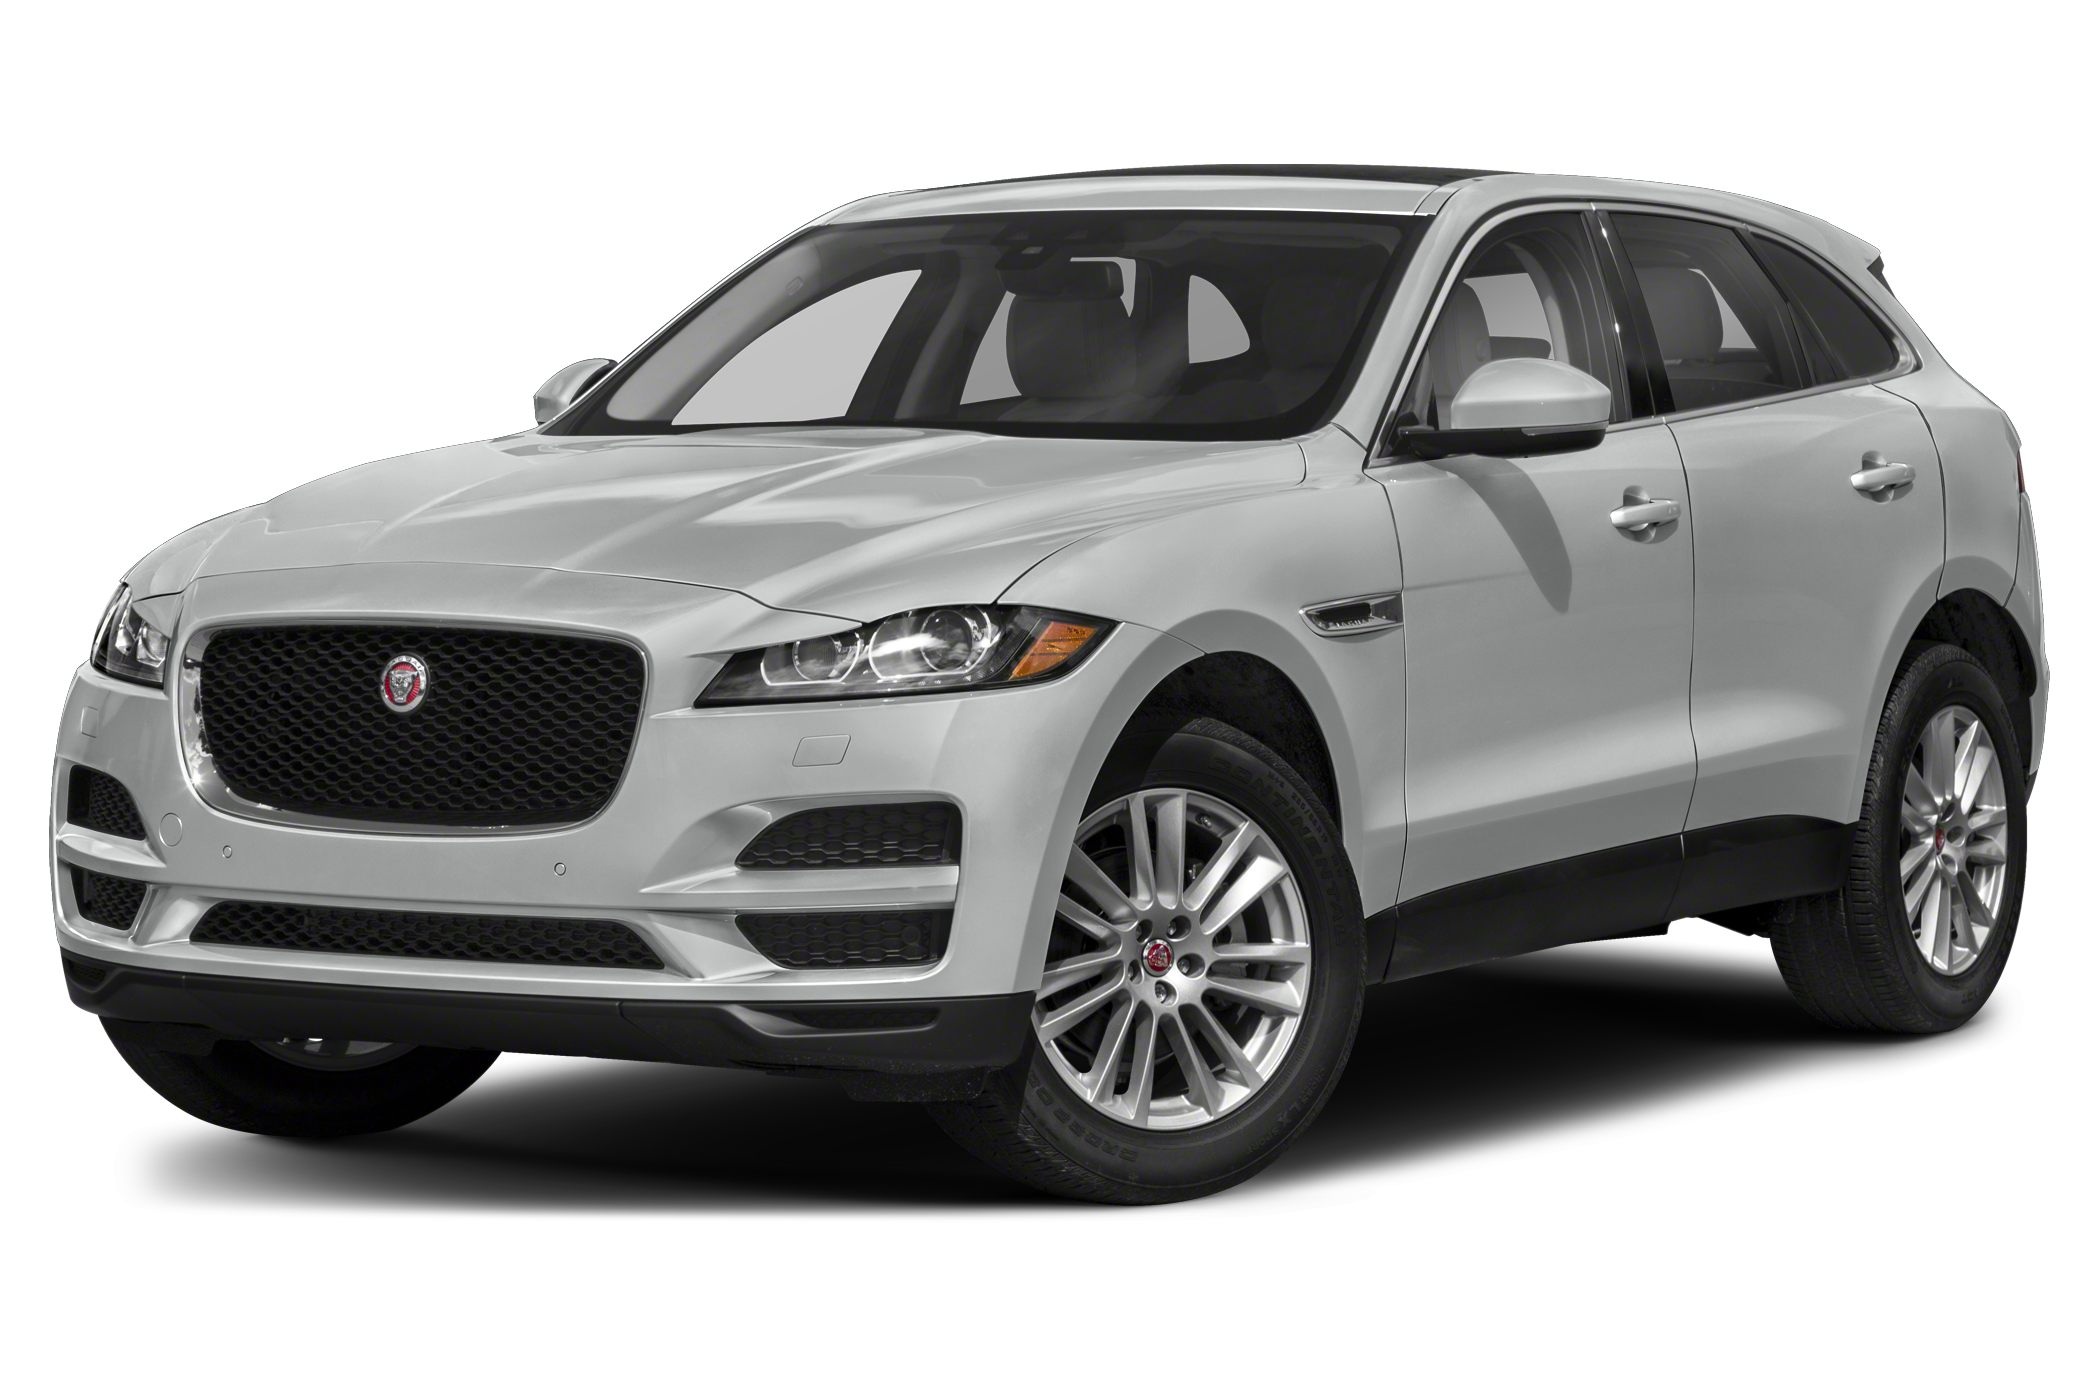 2020 Jaguar F Pace 25t Checkered Flag Limited Edition All Wheel Drive Sport Utility Pricing And Options